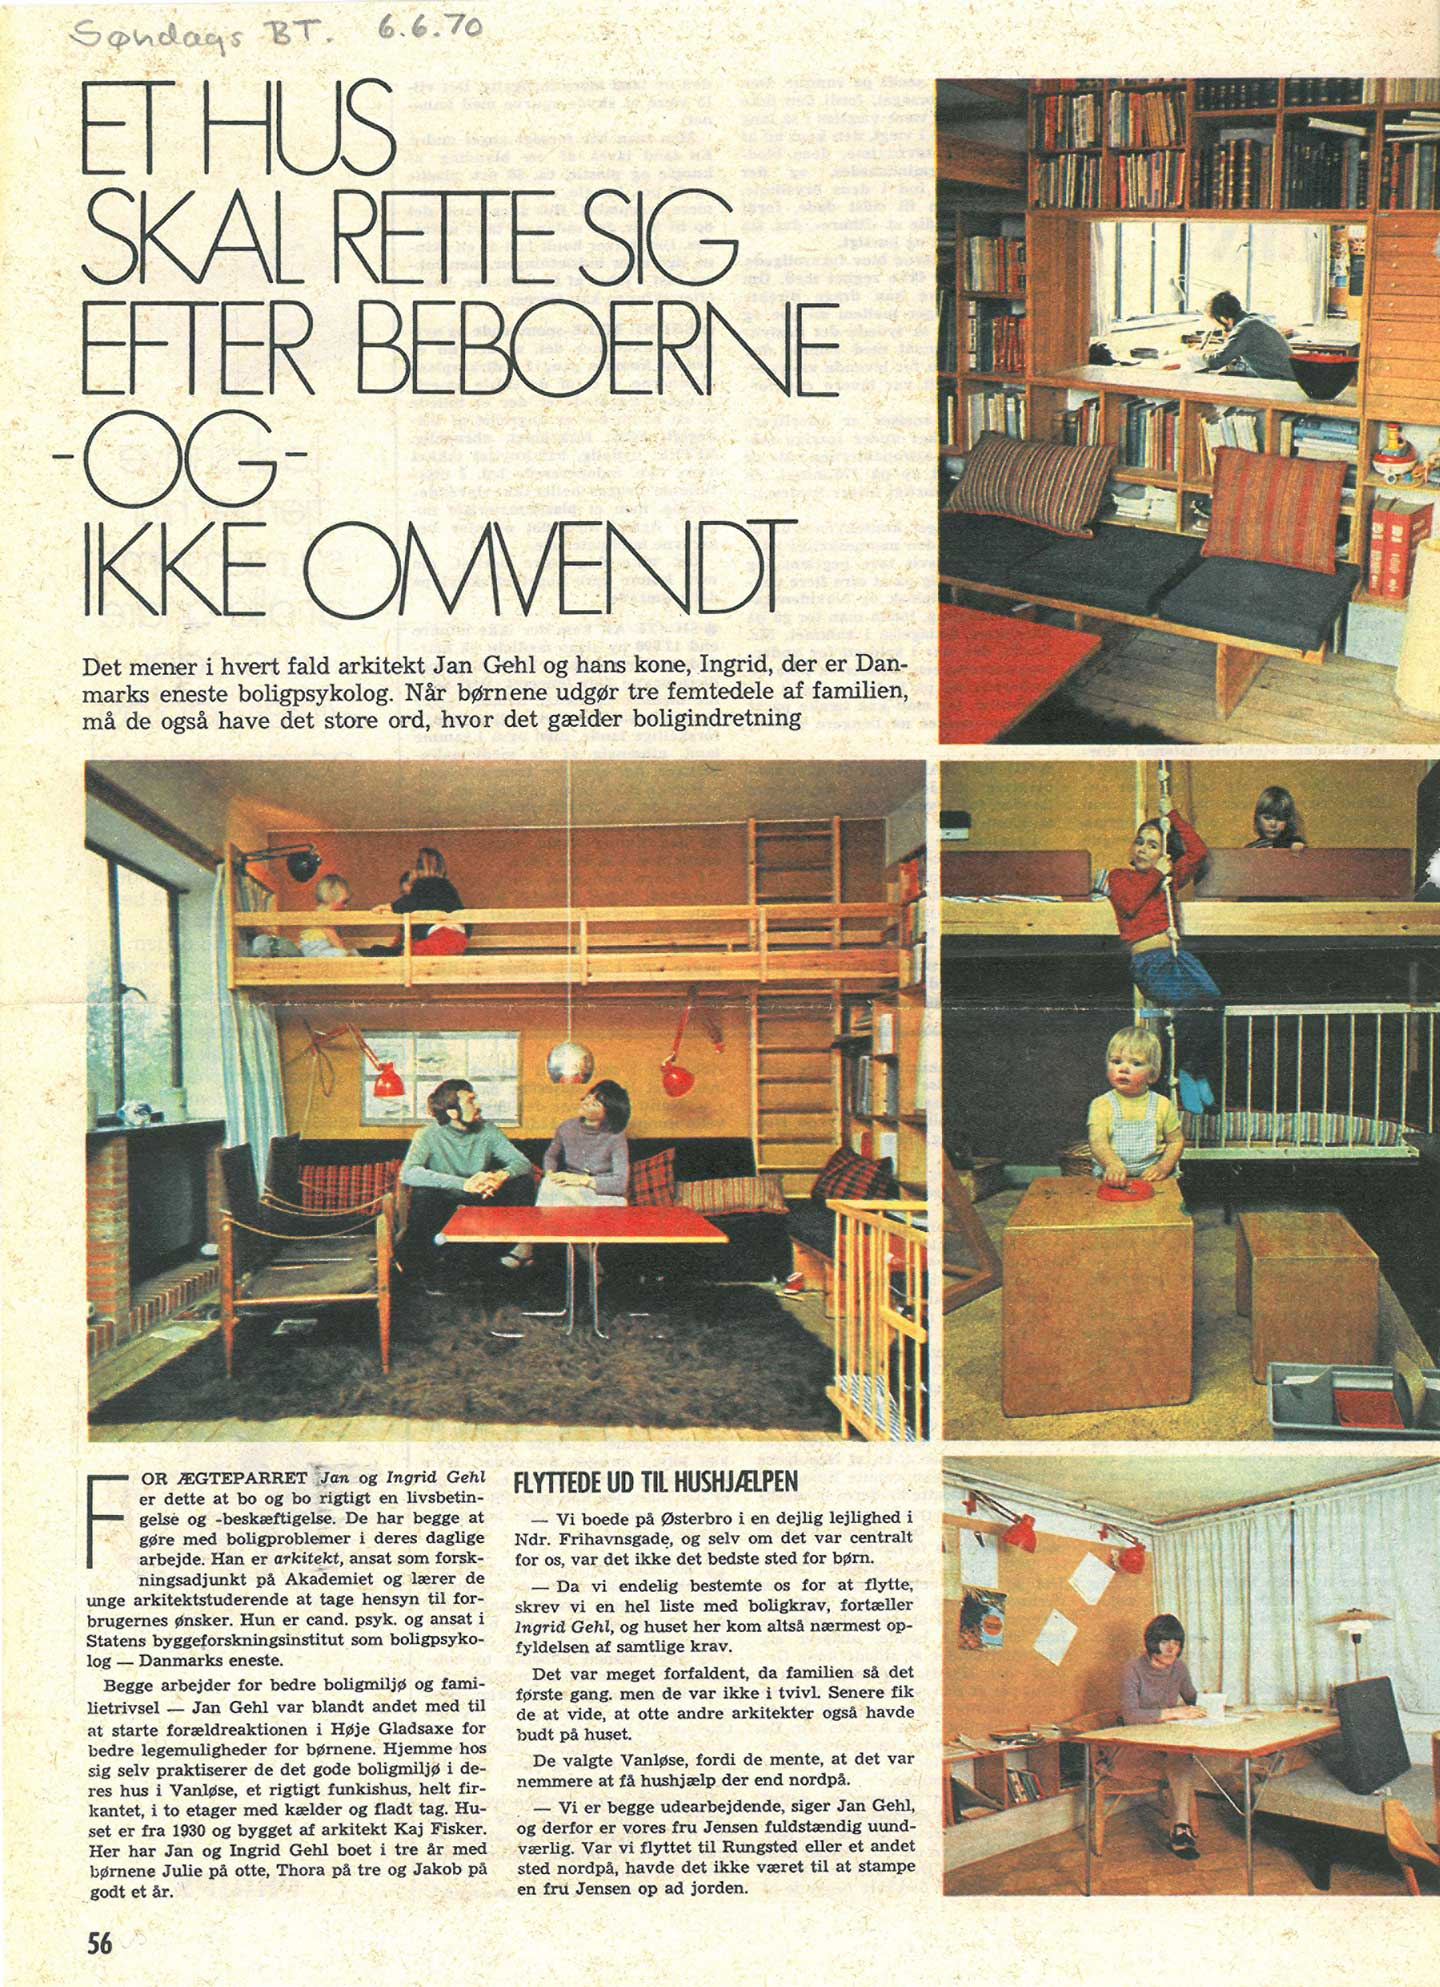 Architecture psychology and urban planning gehl ingrid and jan gehl in their home featured in the danish newspaper sndags bt sciox Image collections